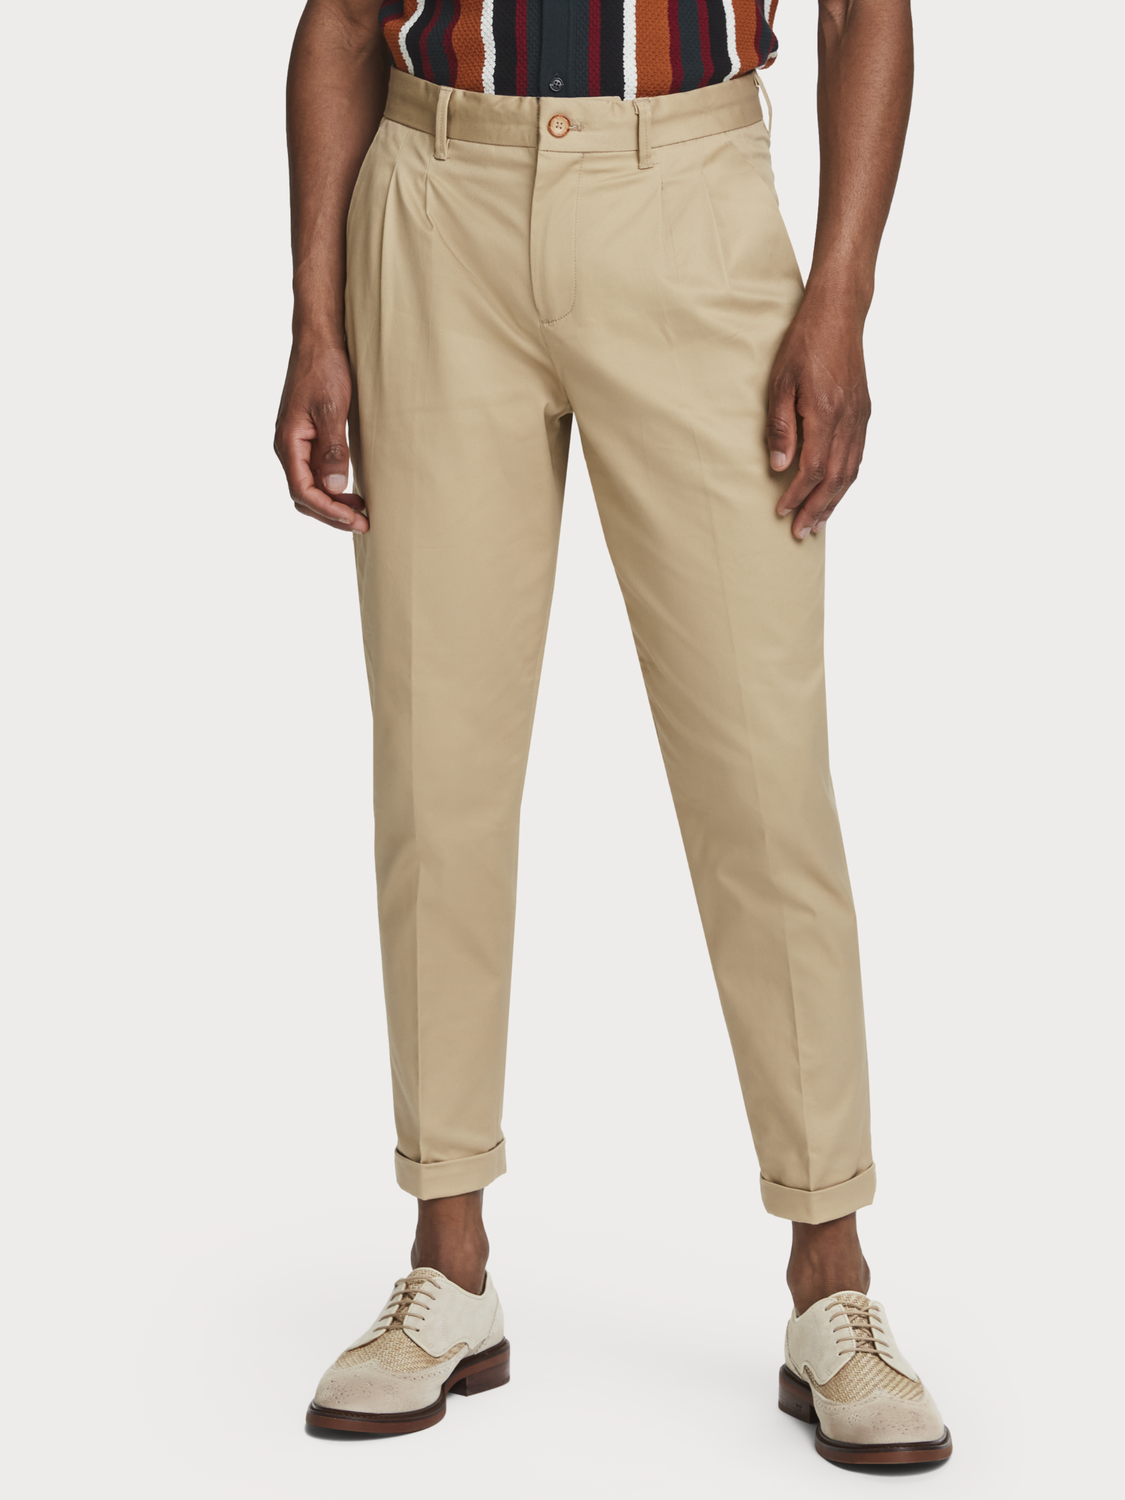 Men Twilt - pleated twill chinos | Loose tapered fit